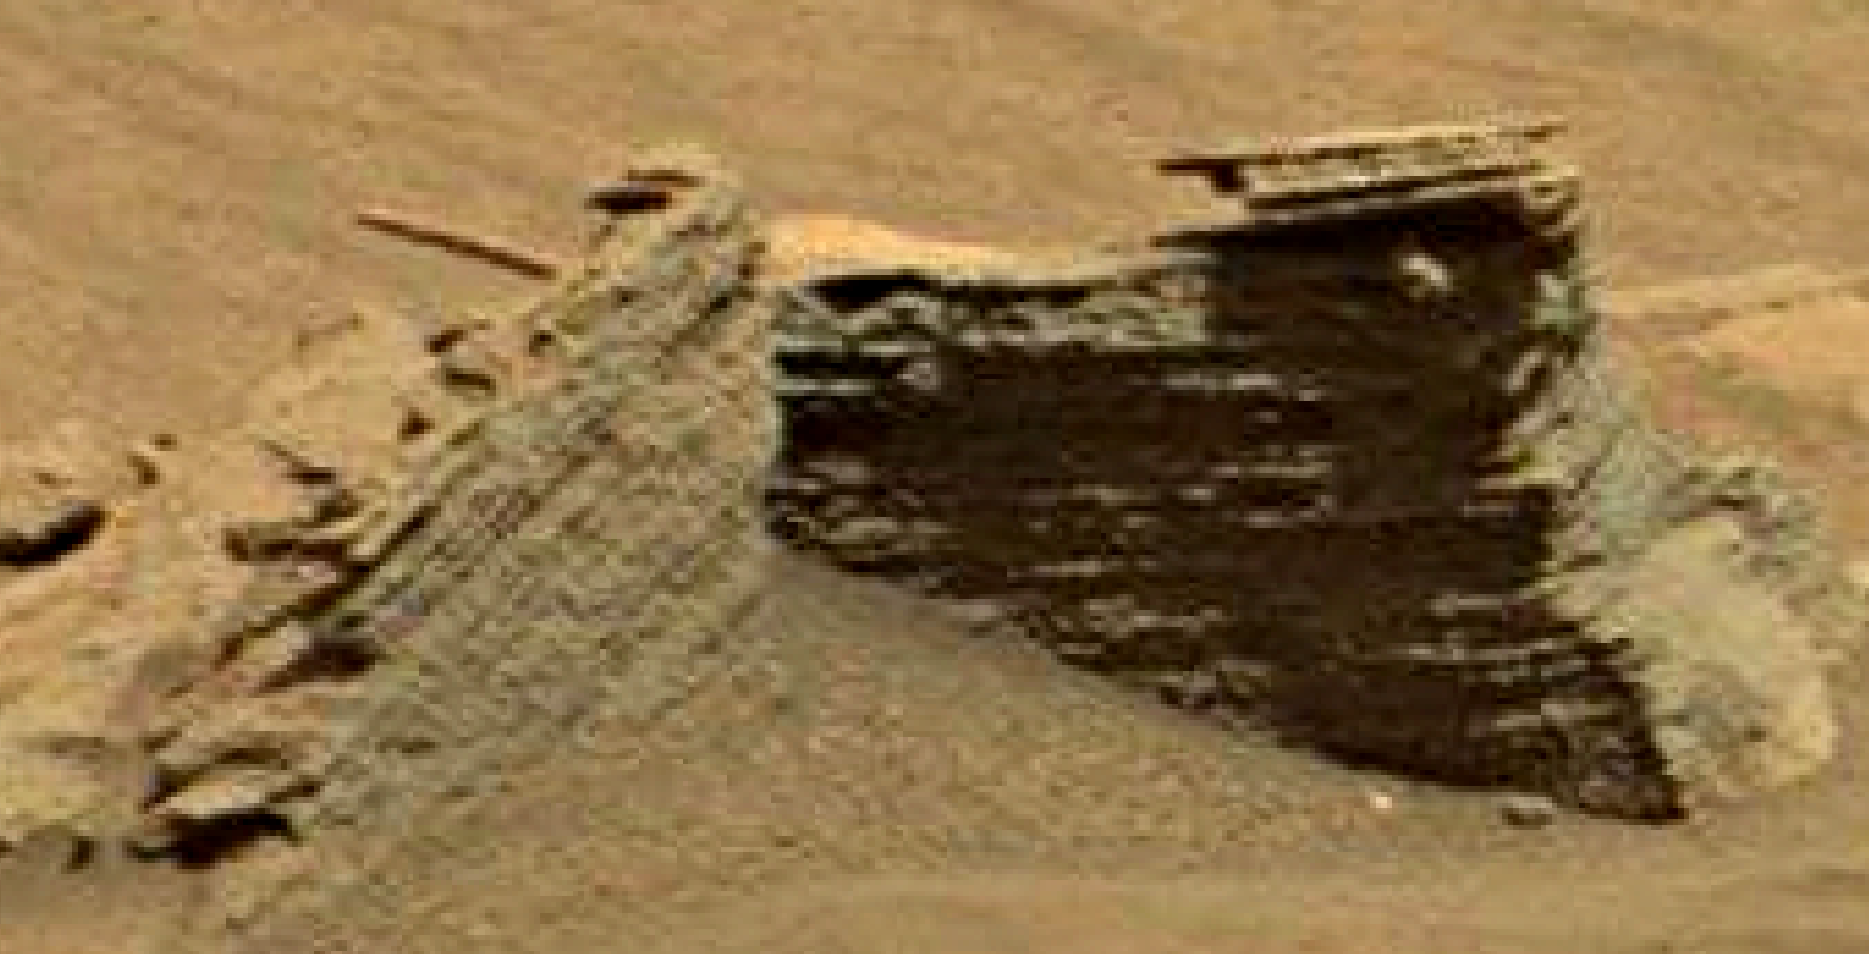 mars sol 1346 anomaly-artifacts 8 was life on mars